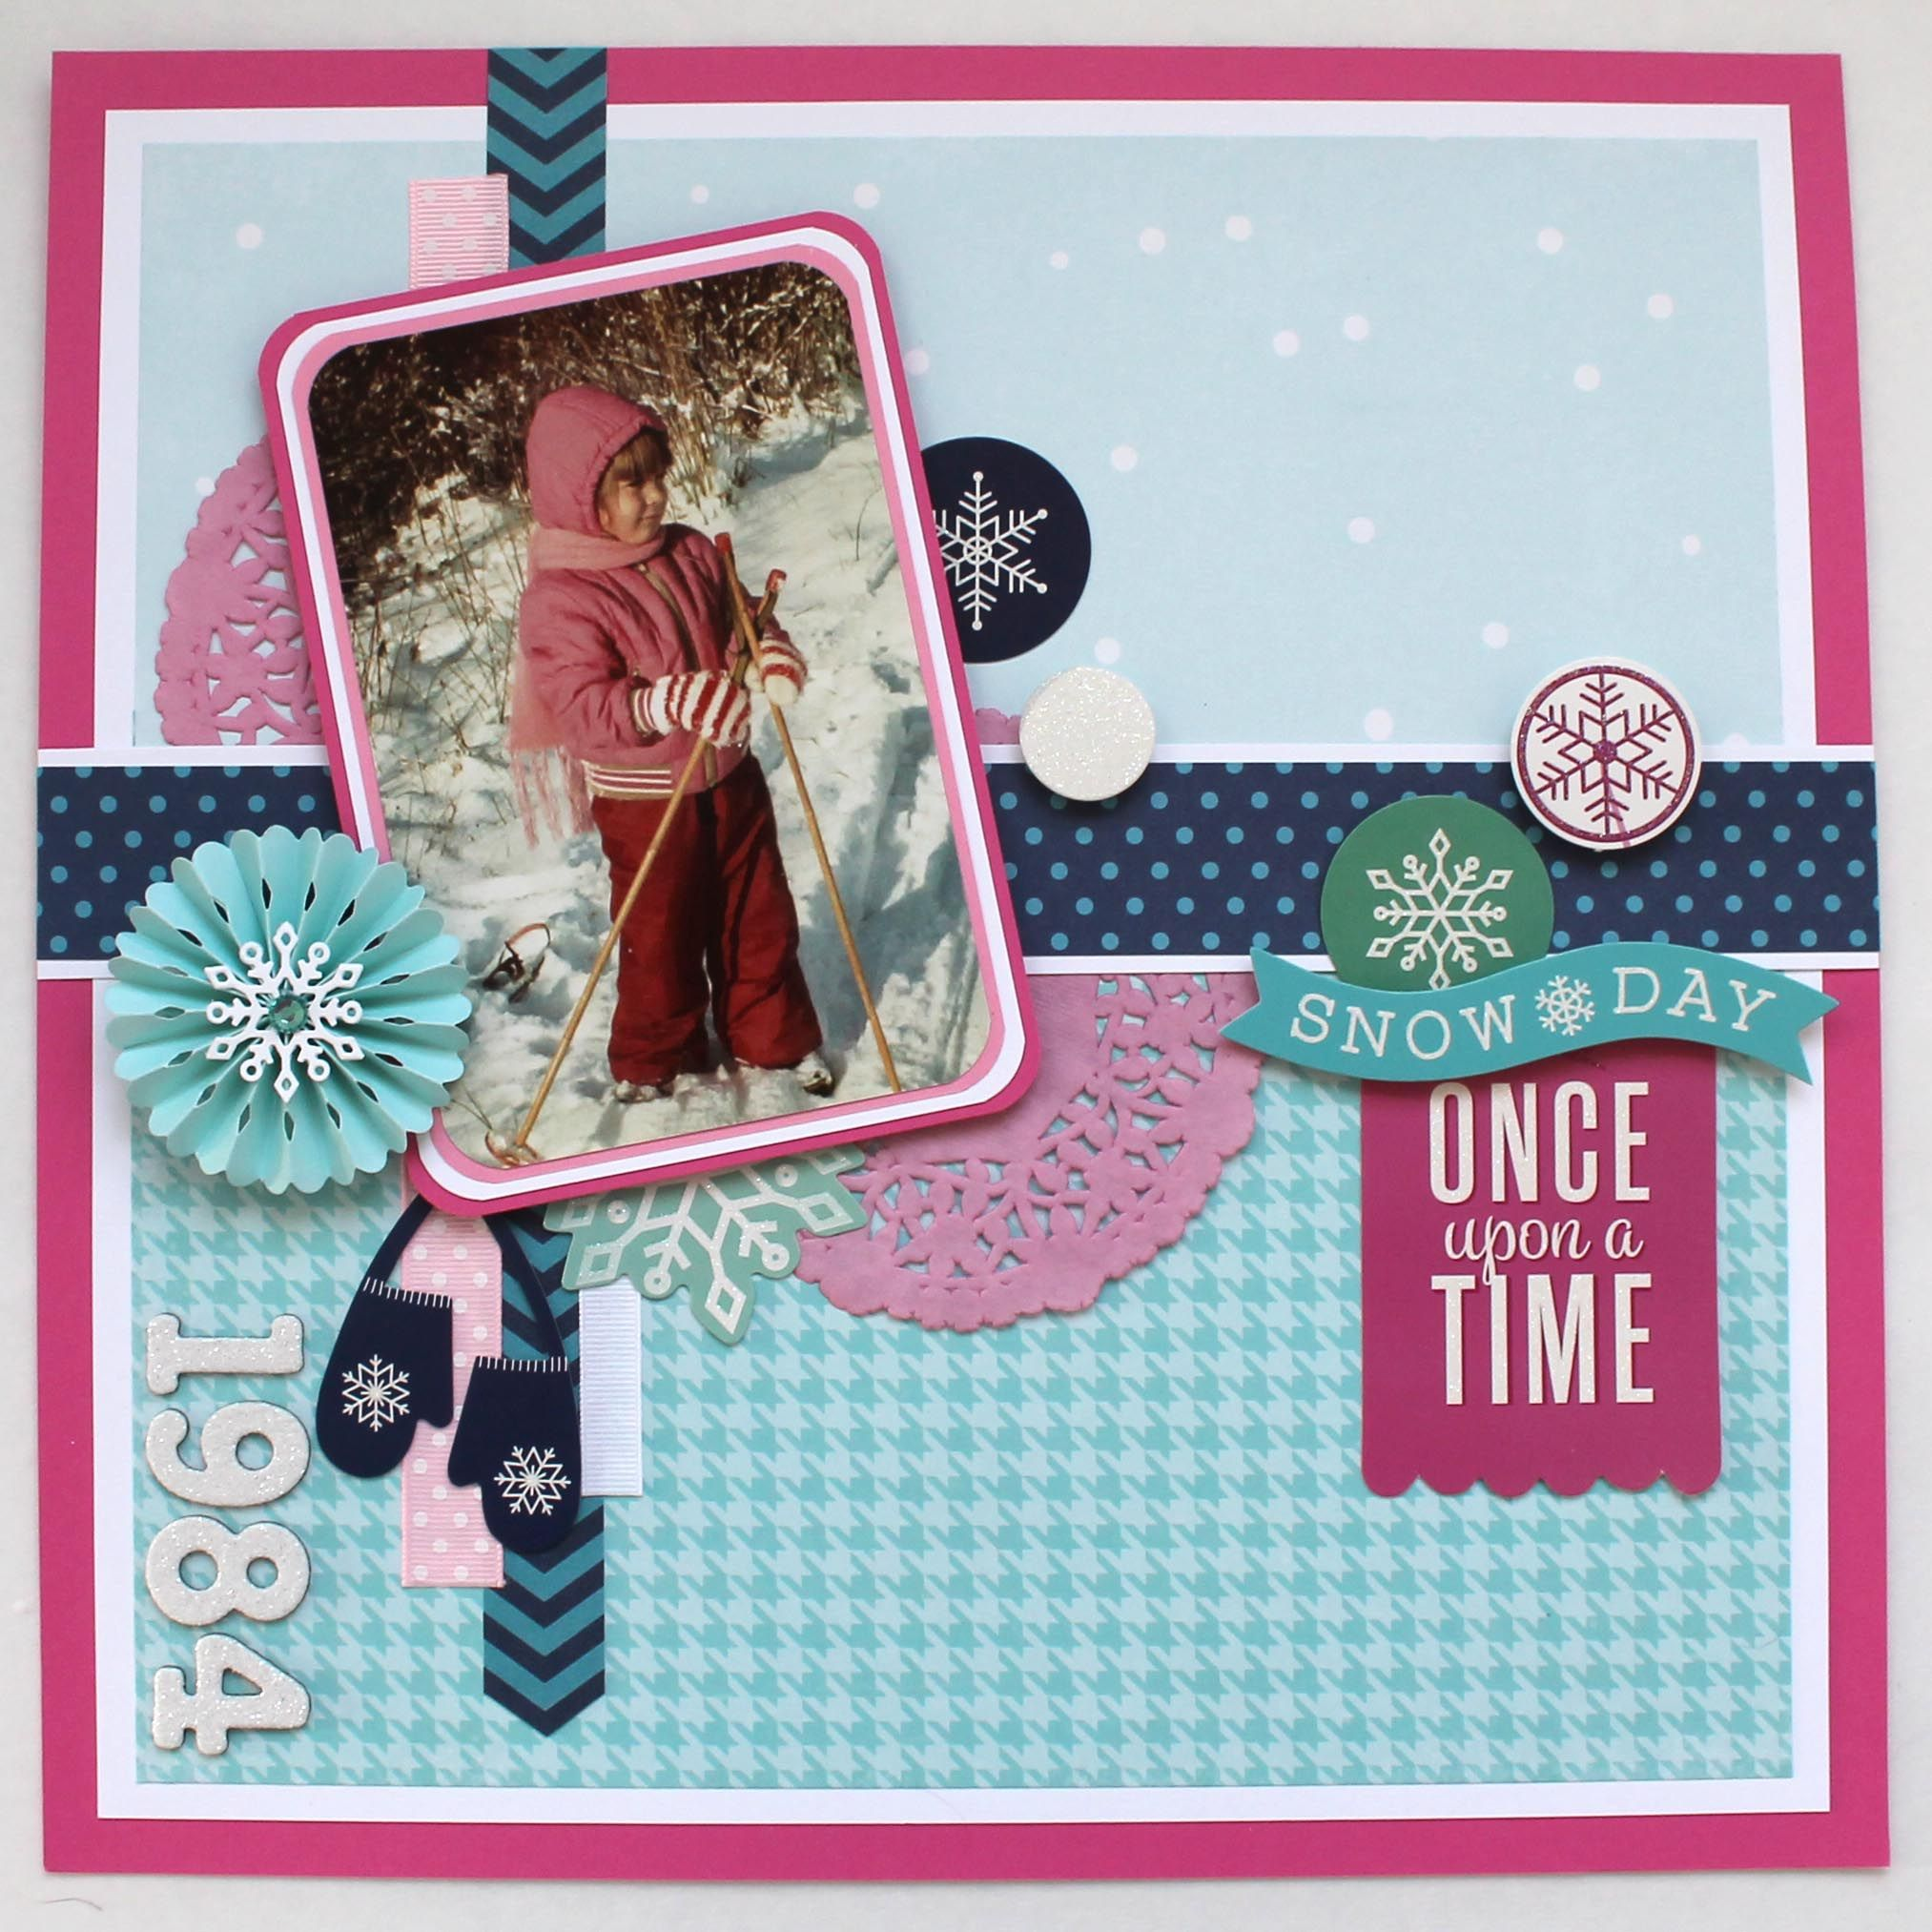 Scrapbook ideas and themes - Snow Day Once Upon A Time Scrapbook Com